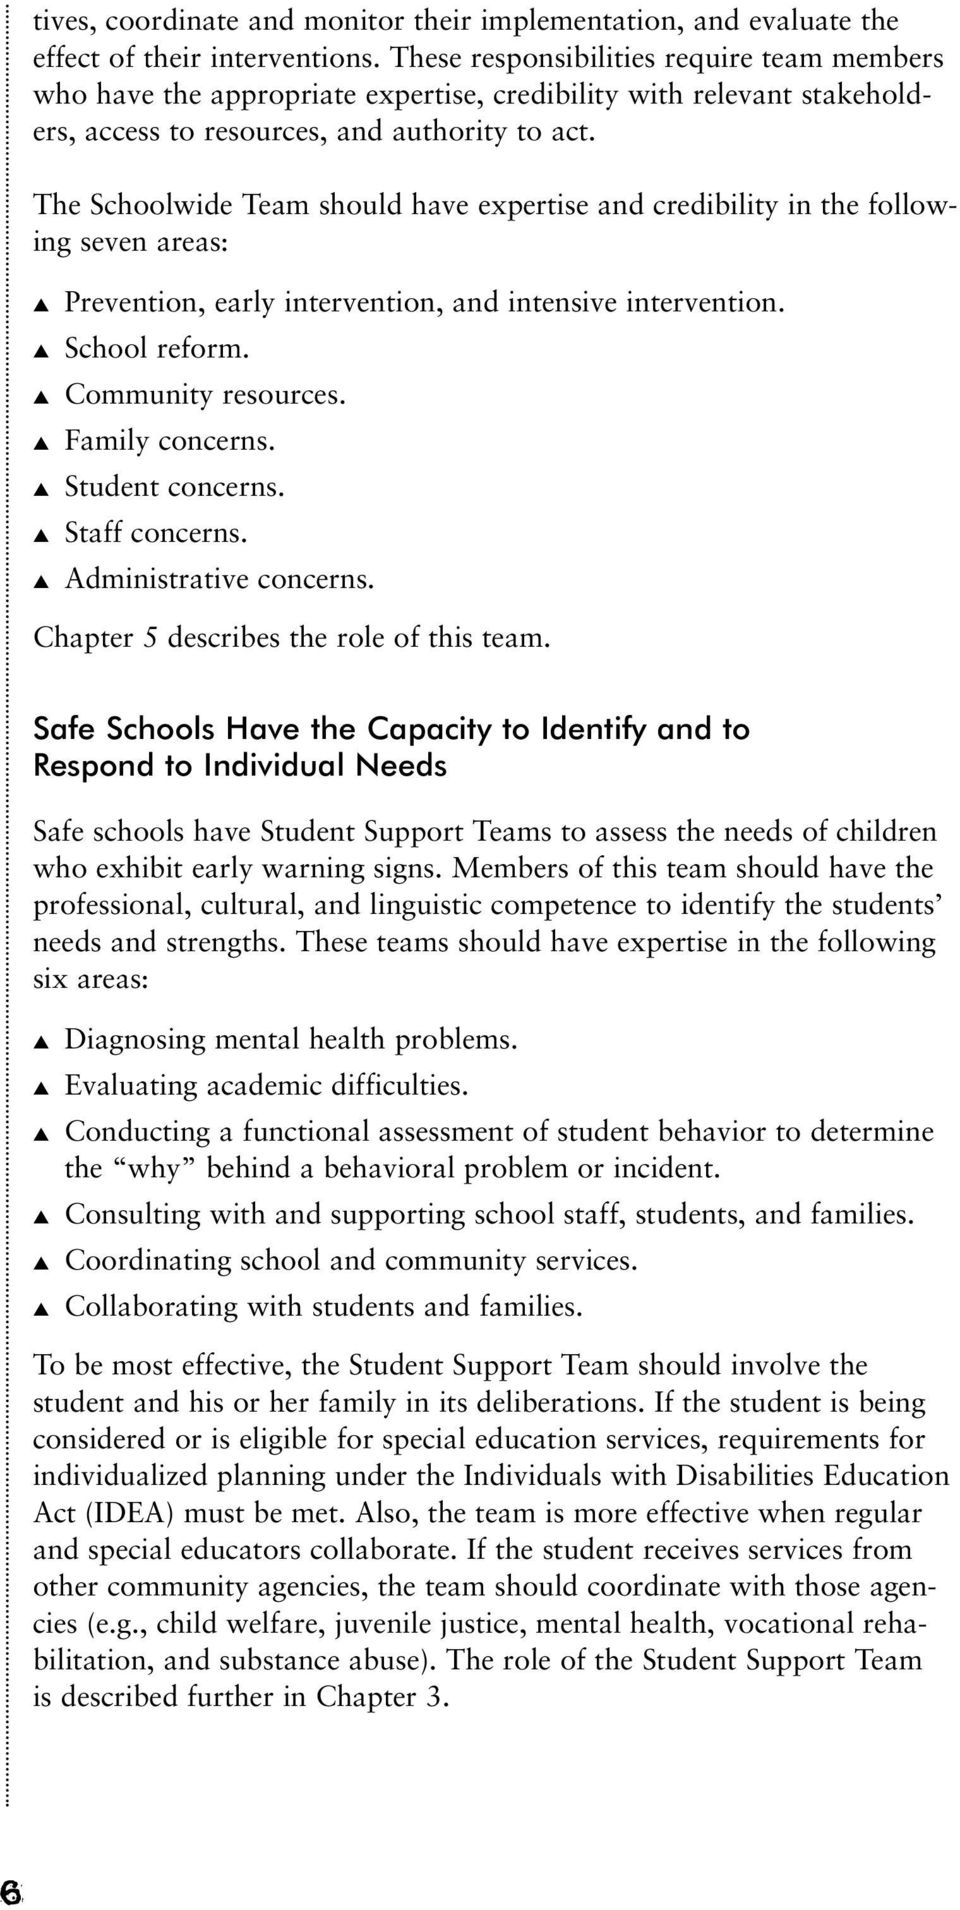 The Schoolwide Team should have expertise and credibility in the following seven areas: Prevention, early intervention, and intensive intervention. School reform. Community resources. Family concerns.